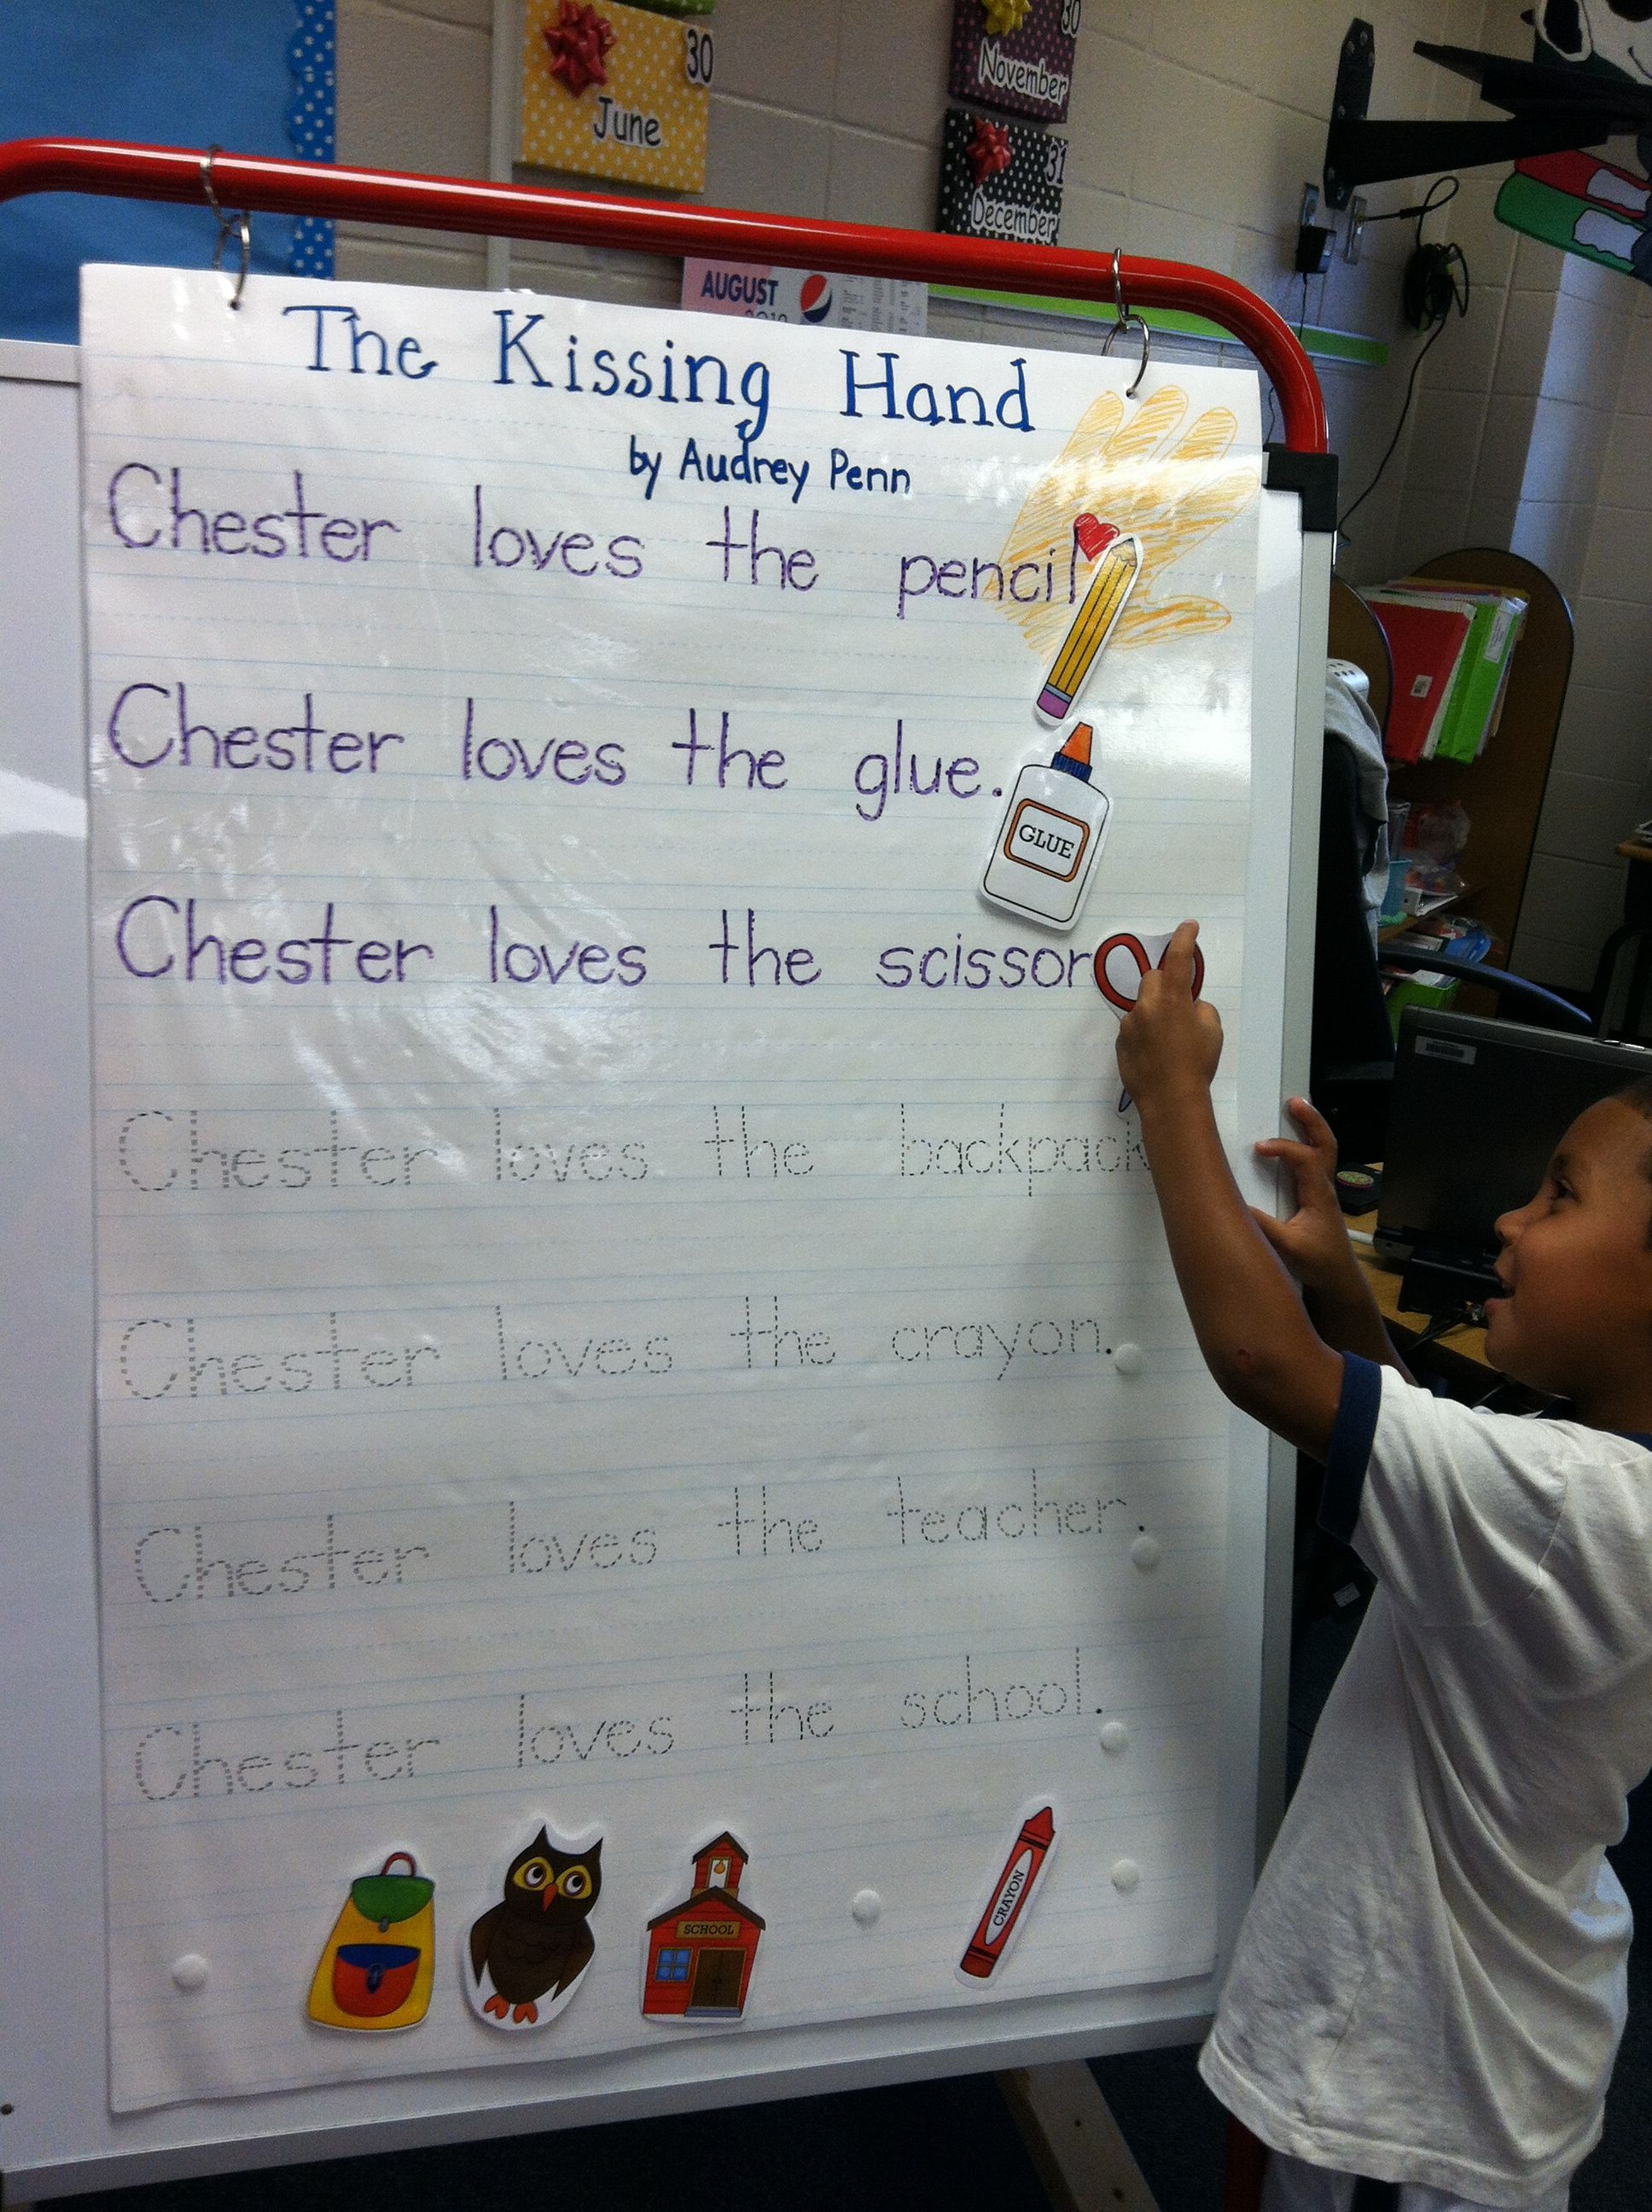 Students Read And Interact With Predictable Sentences About Chester From The Kissing Hand